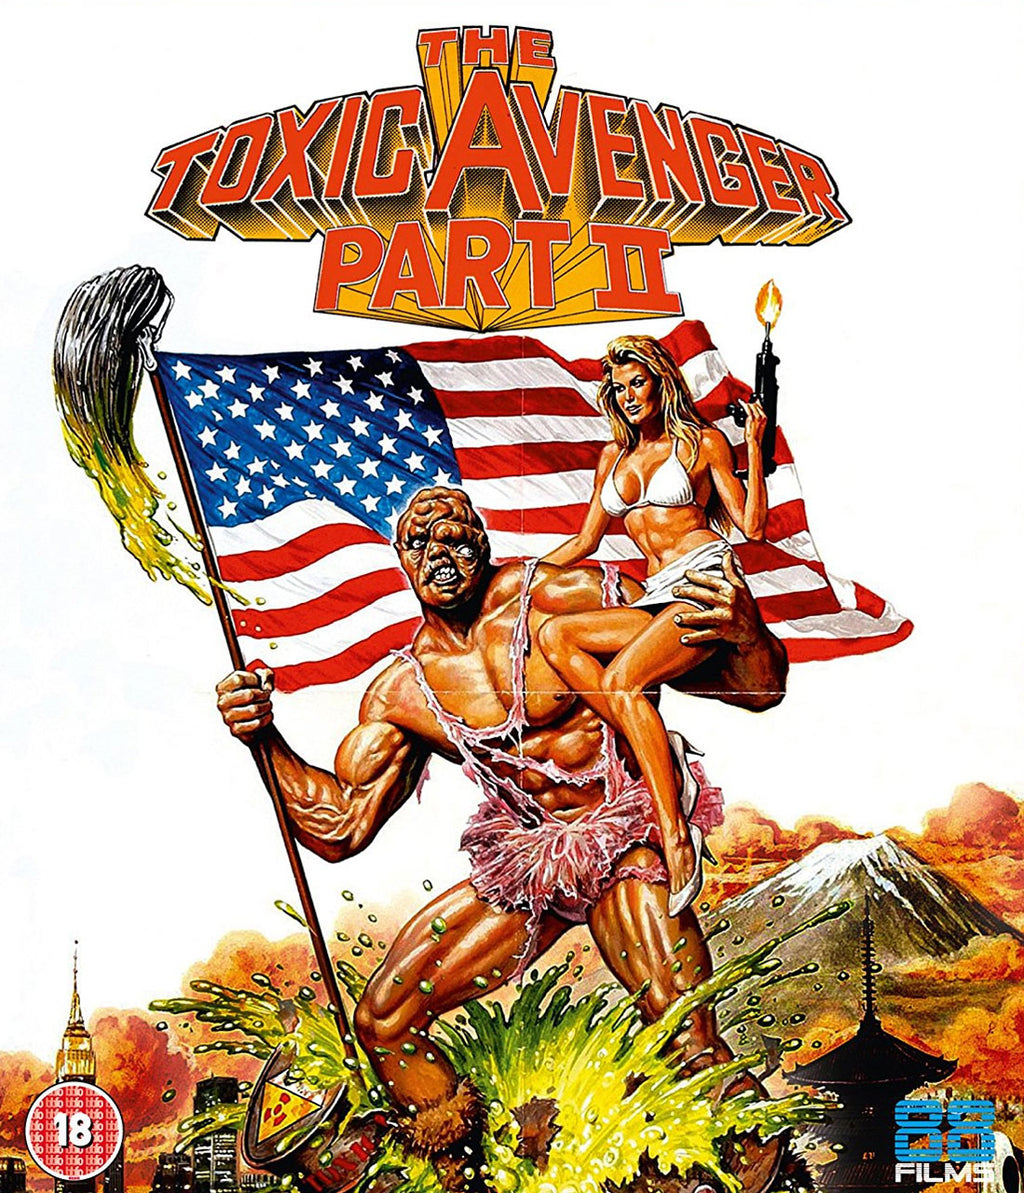 The Toxic Avenger Part II (1989) (Blu-ray)